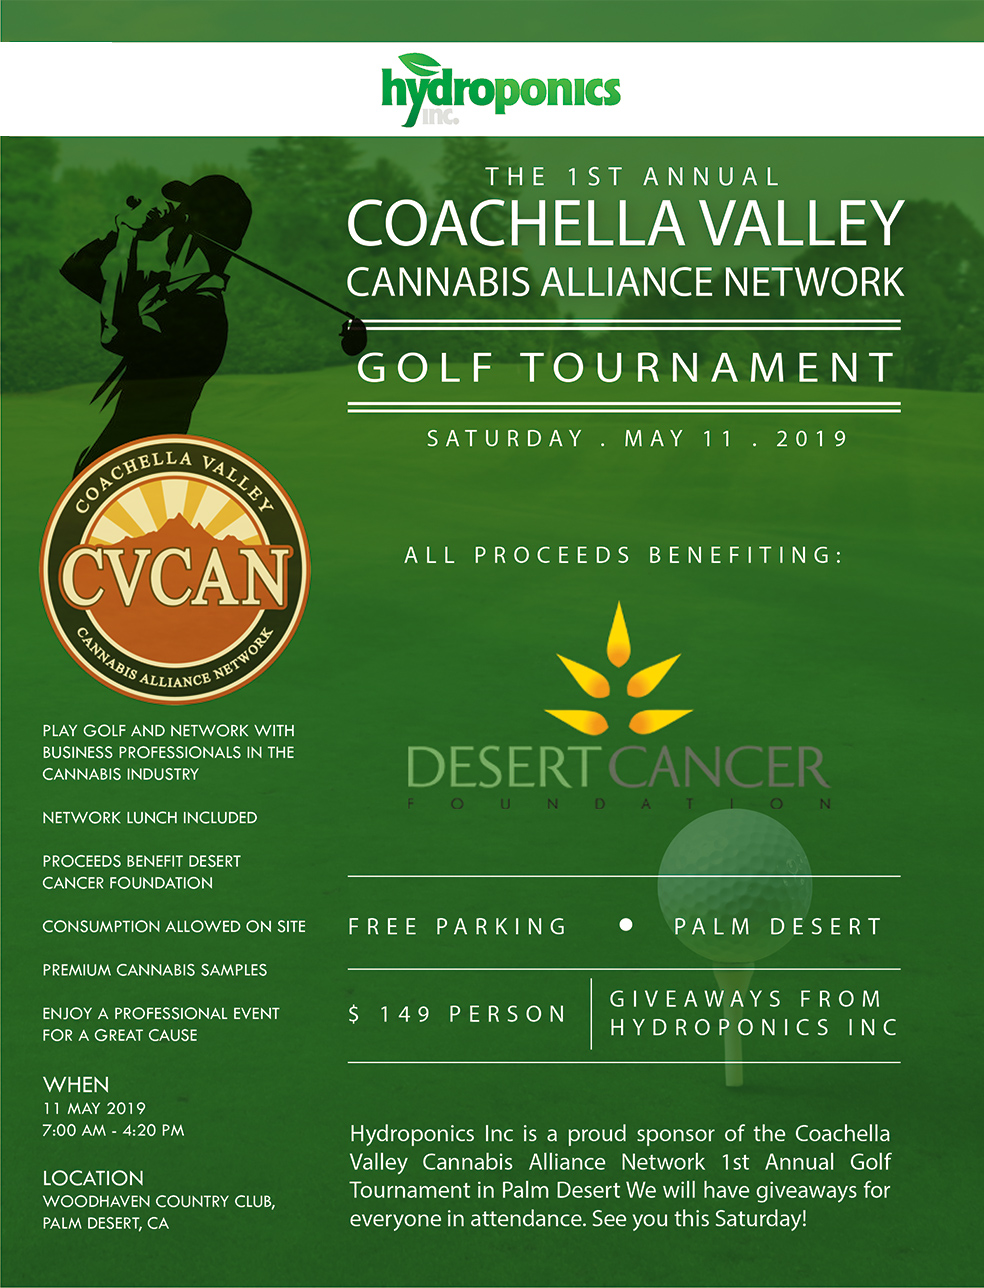 Hydroponics Inc is a proud sponsor of the 1st Annual  #CVCAN  Charity Golf Tournament benefiting the  @desertcancerfoundation  this Saturday, May 11.  This is a fun twist on a networking event with industry leaders while raising funds for the Desert Cancer Foundation, so if you have little or no golf experience, do not let that stop you!  Contact  @c.v.c.a.n  and reserve your spot today. We will handing out awesome freebies to everyone in attendance. See you this Saturday!